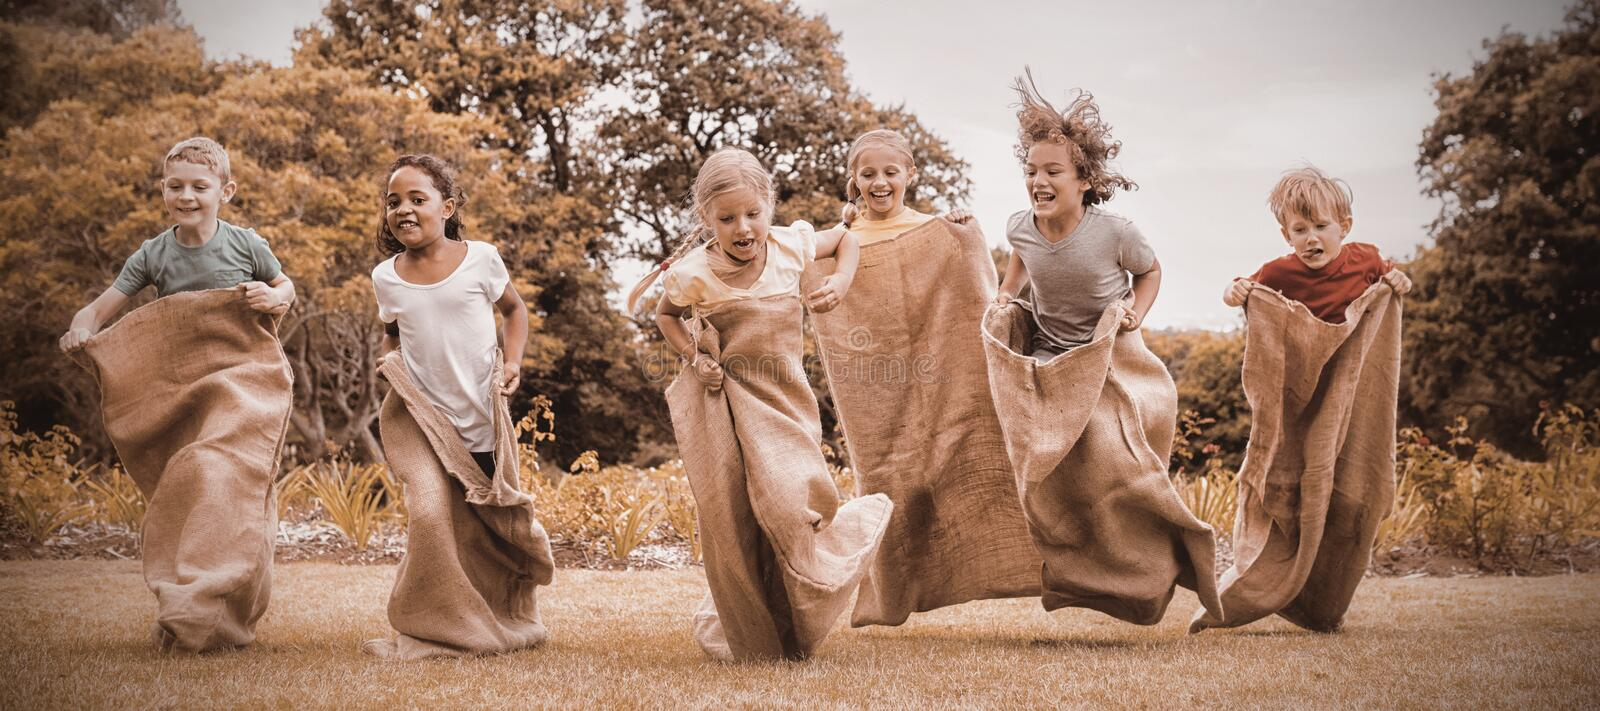 Children having a sack race in park stock photos